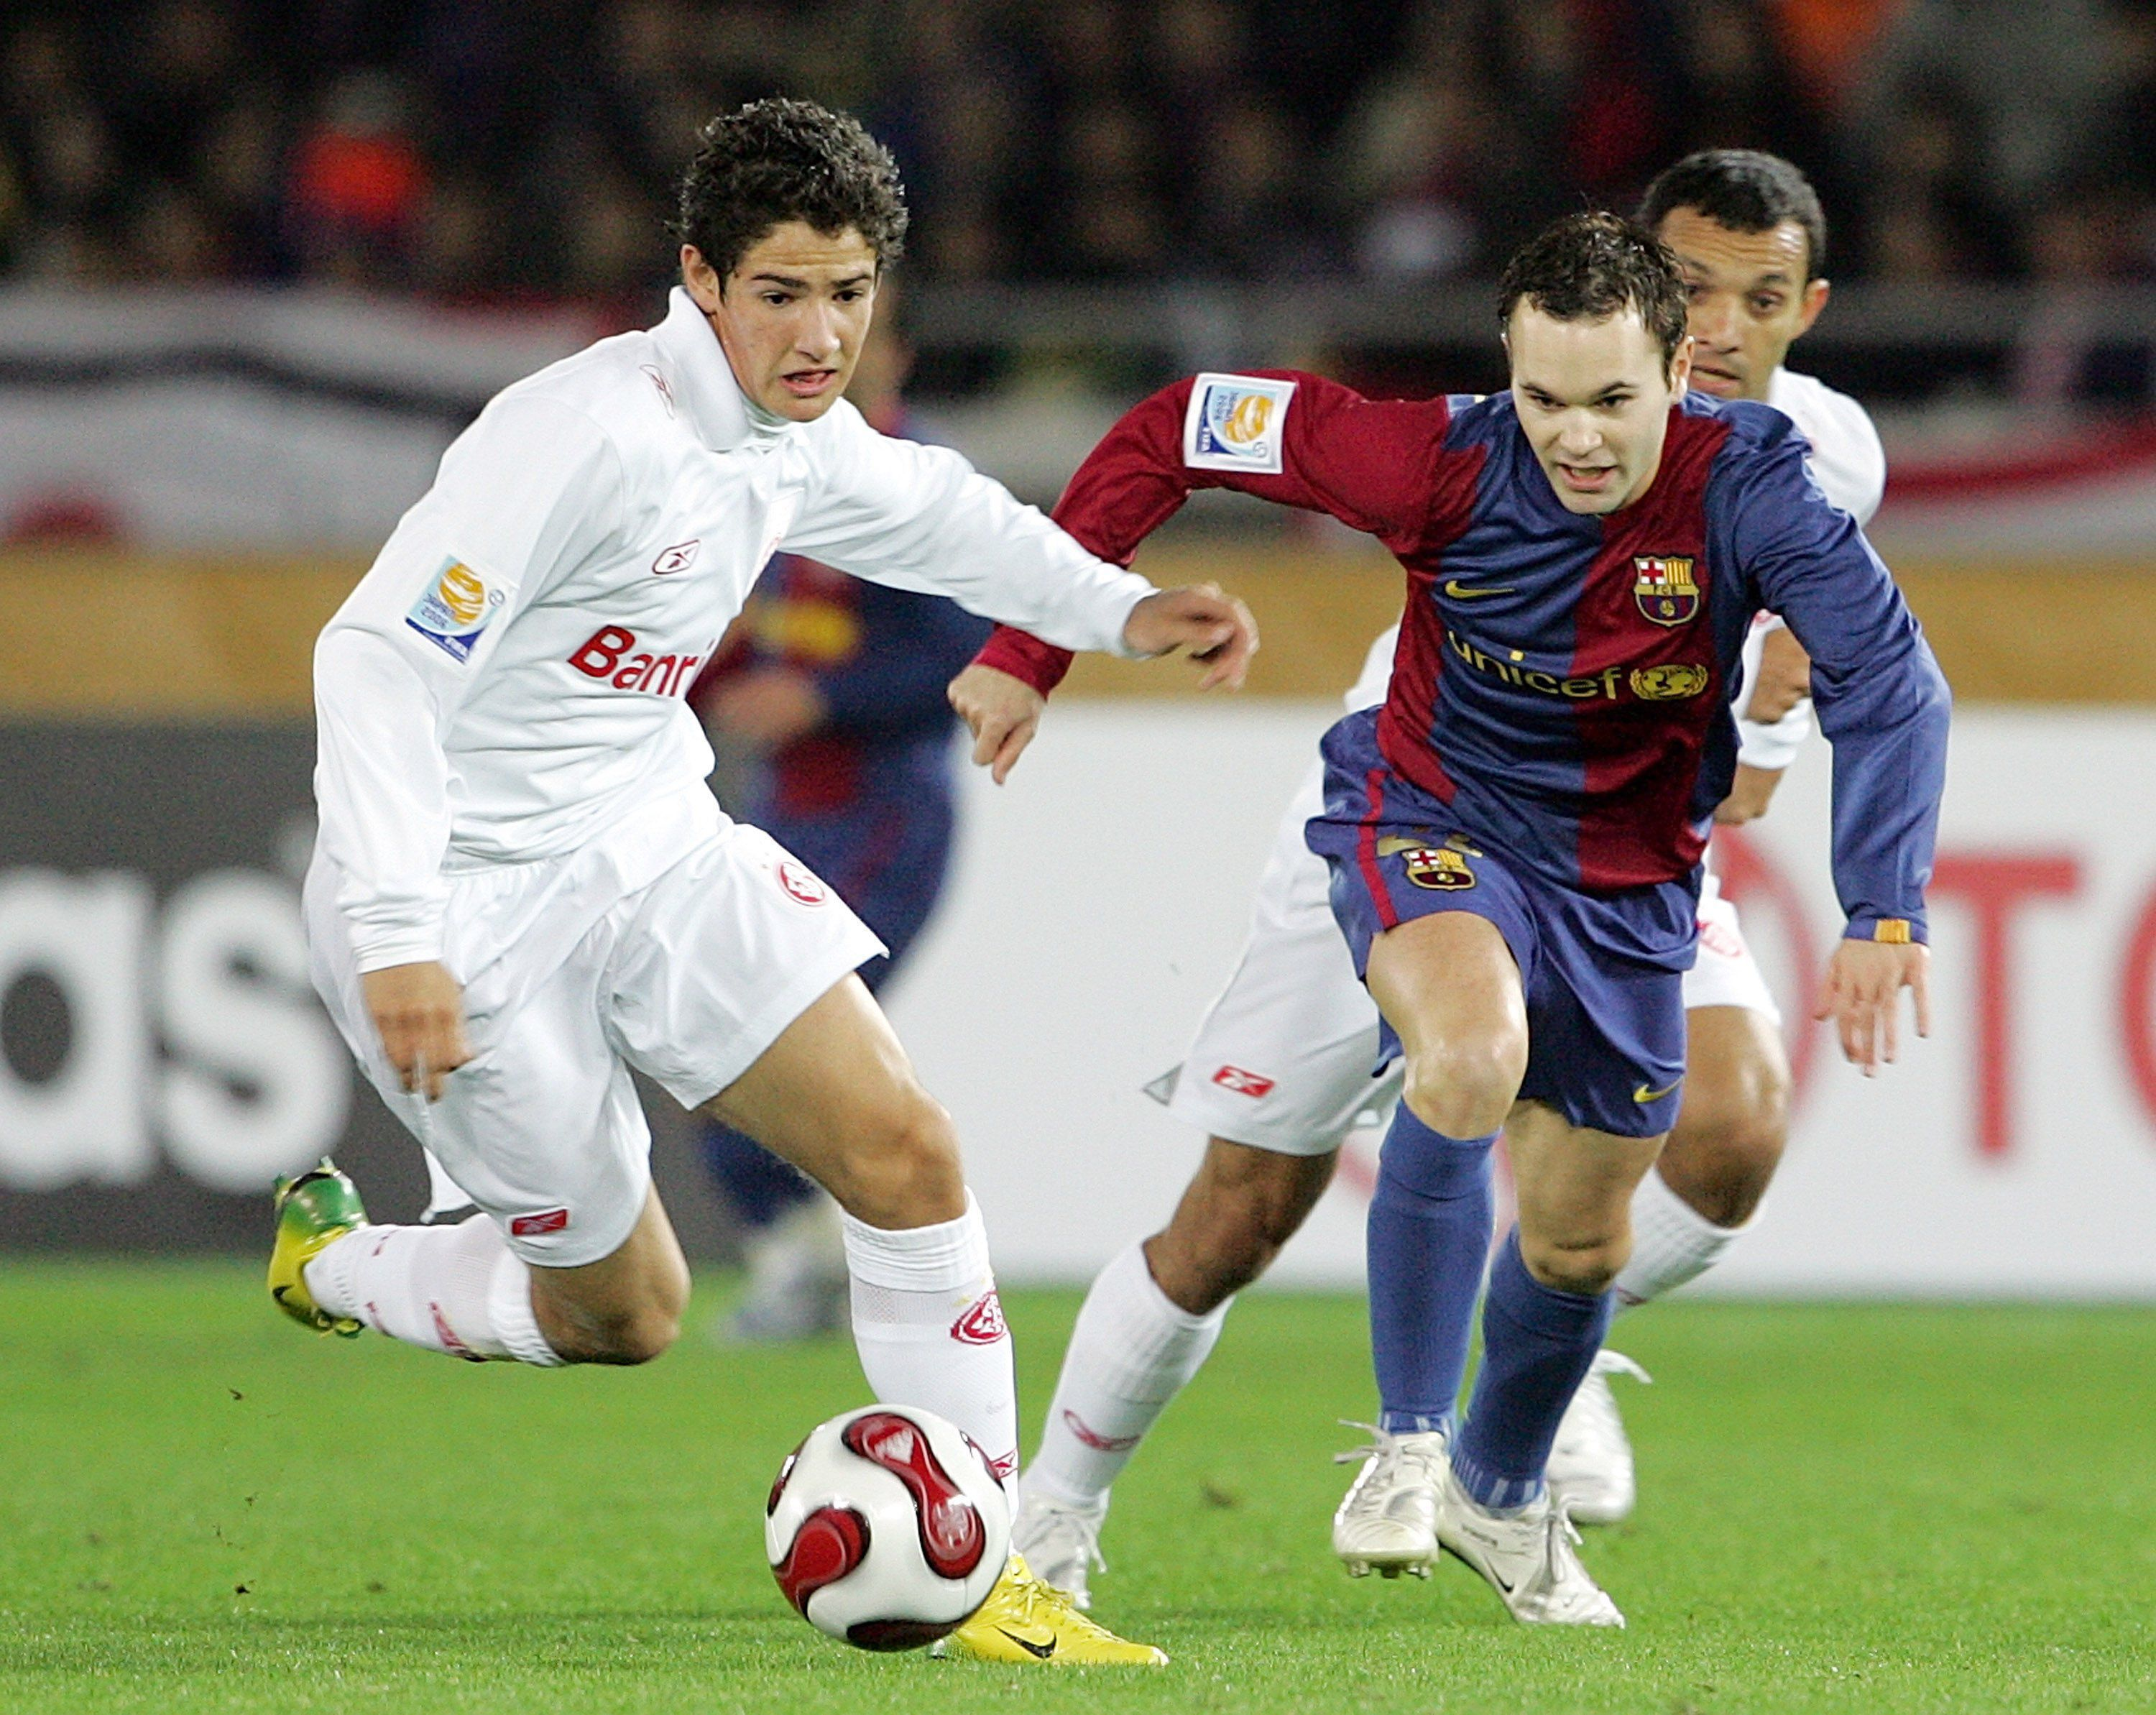 FIFA Club World Cup Sport Club Internacional V FC Barcelona: Final